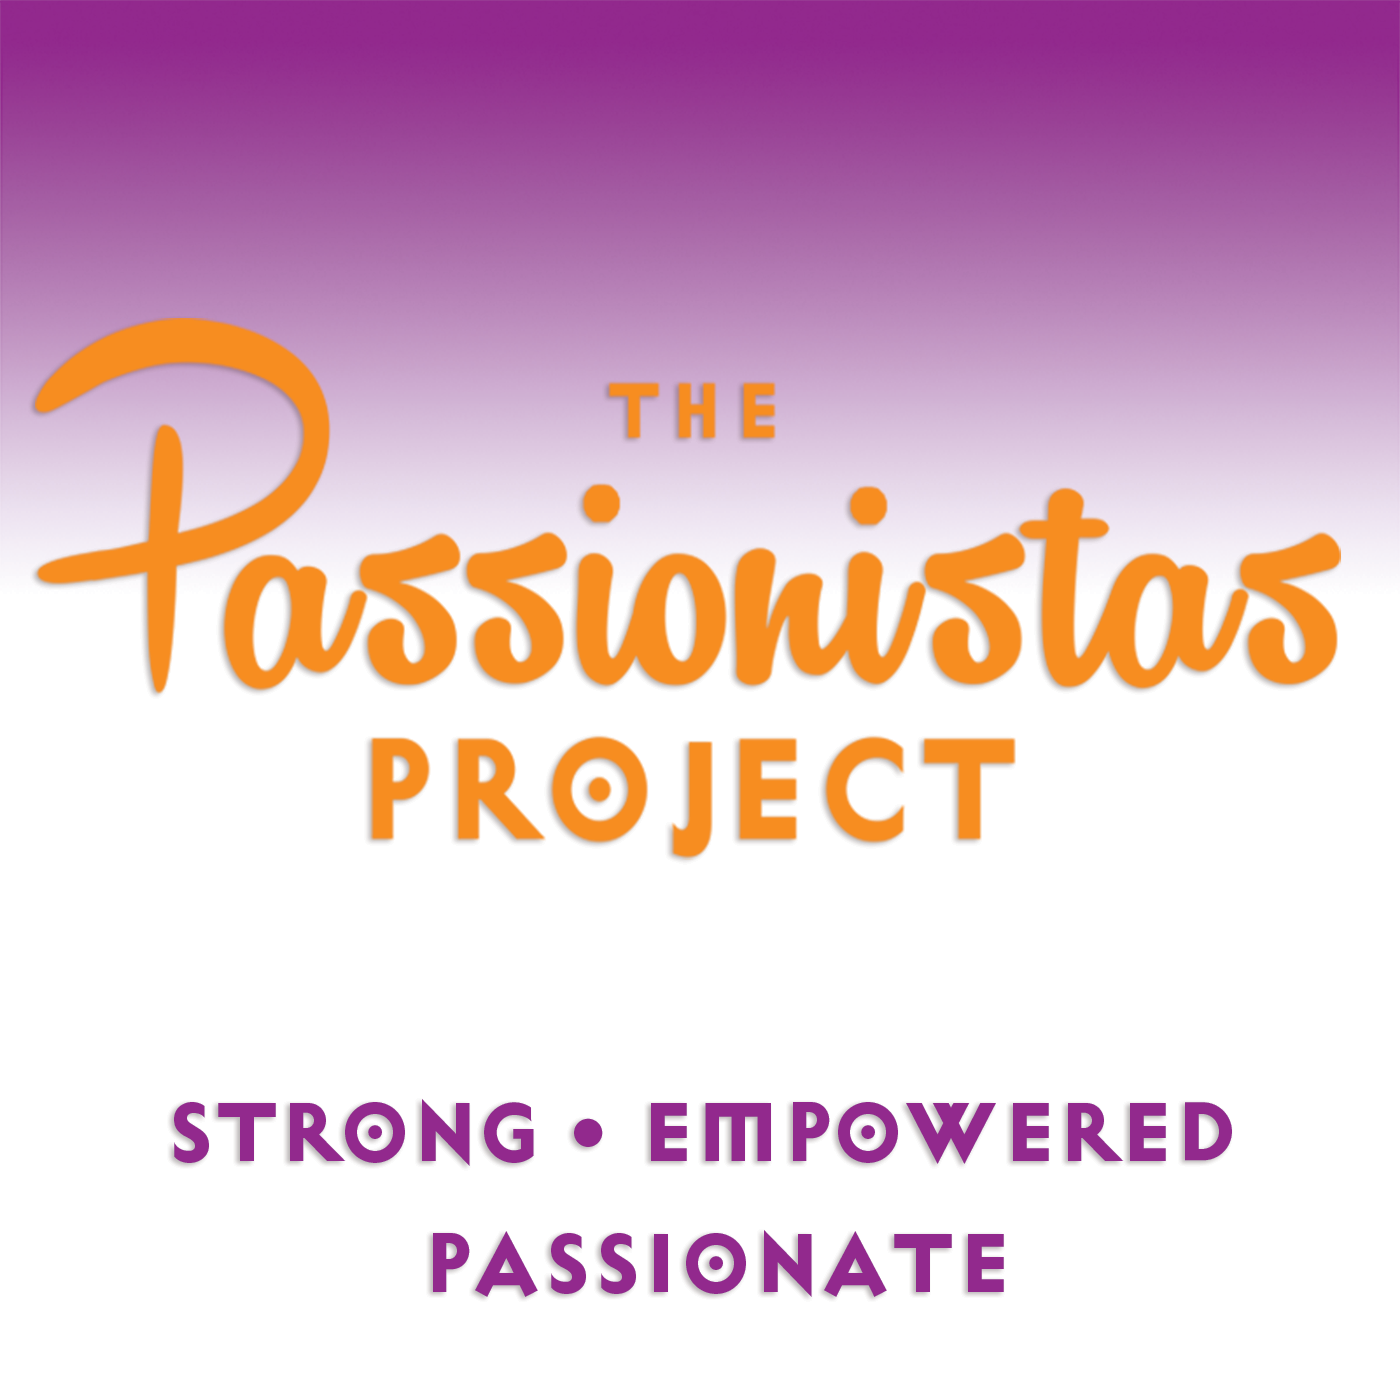 thepassionistasproject